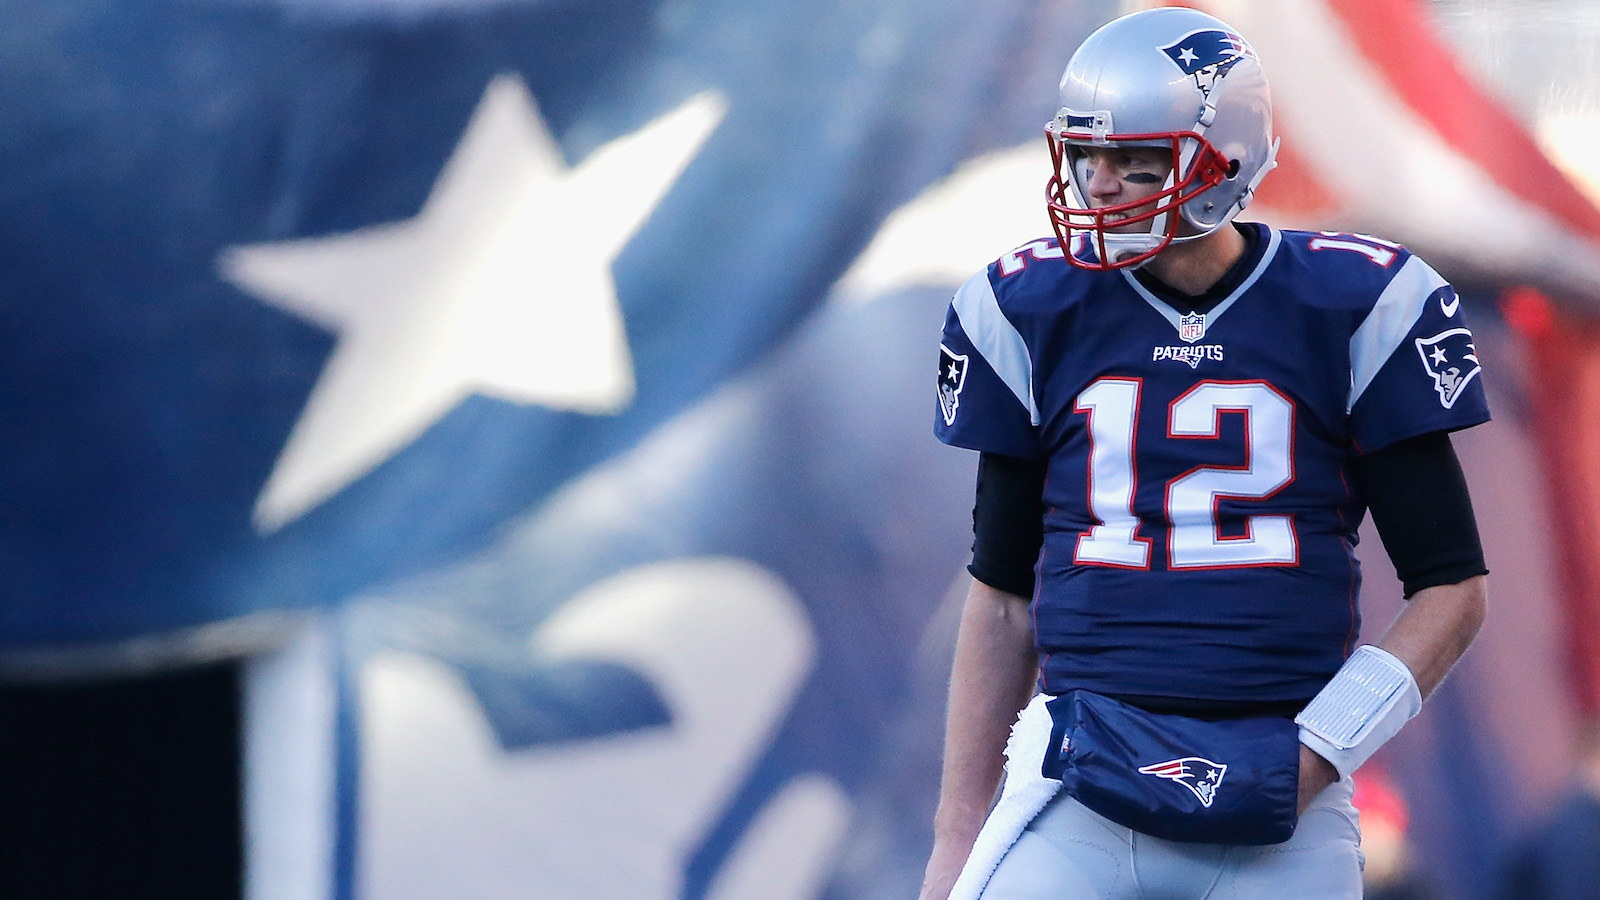 FOXBORO, MA - DECEMBER 04:  Tom Brady #12 of the New England Patriots looks on during the first half against the Los Angeles Rams at Gillette Stadium on December 4, 2016 in Foxboro, Massachusetts.  (Photo by Jim Rogash/Getty Images)